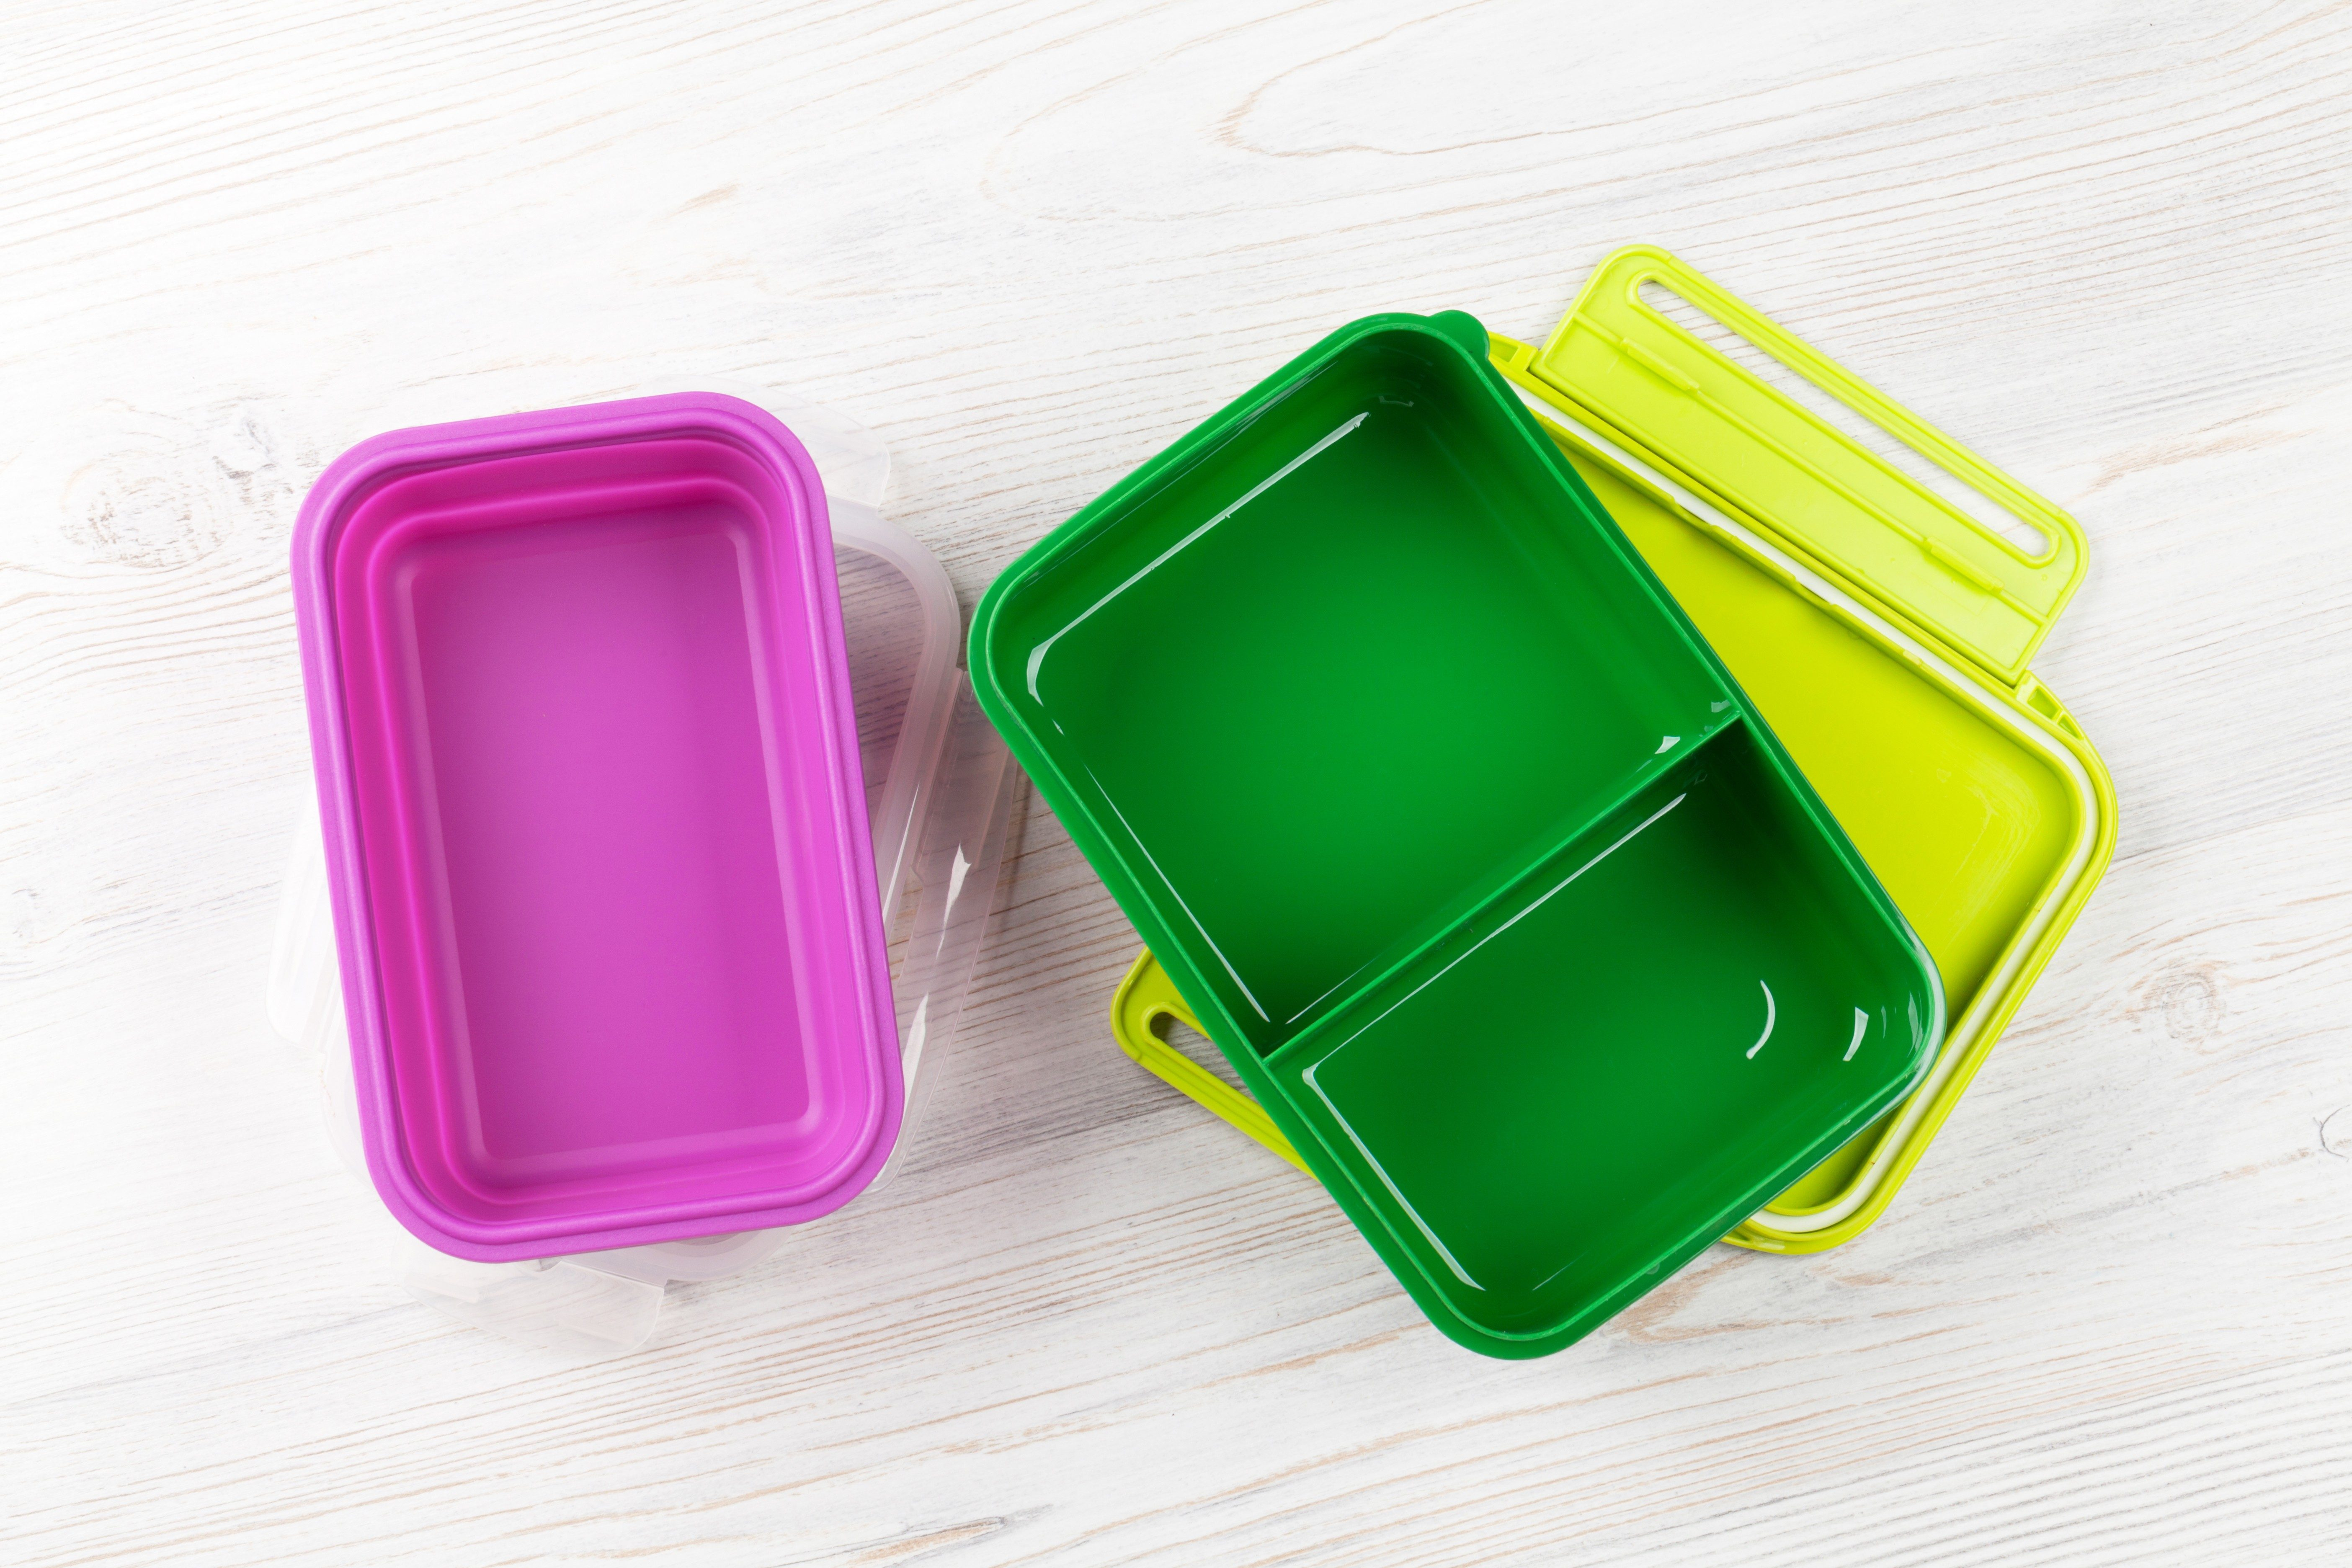 Empty lunch boxes on wooden table. Top view